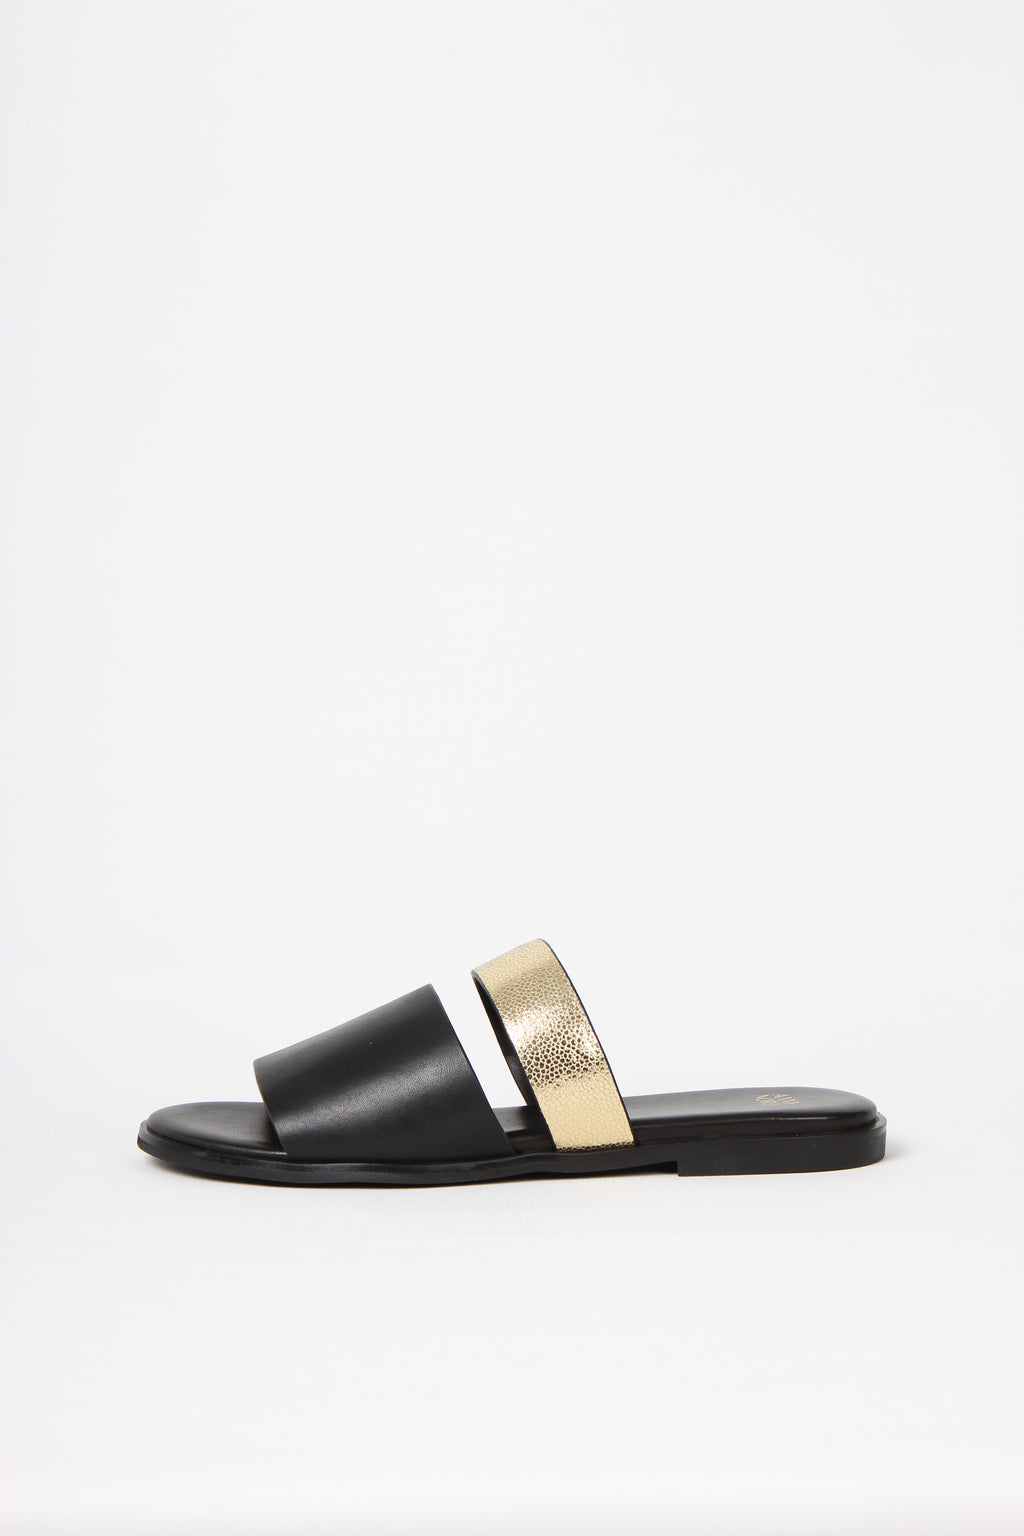 BUSY DOING NOTHING is a comfortable luxury slide sandal in black and gold leather from Swedish shoe and accessory brand ANNY NORD